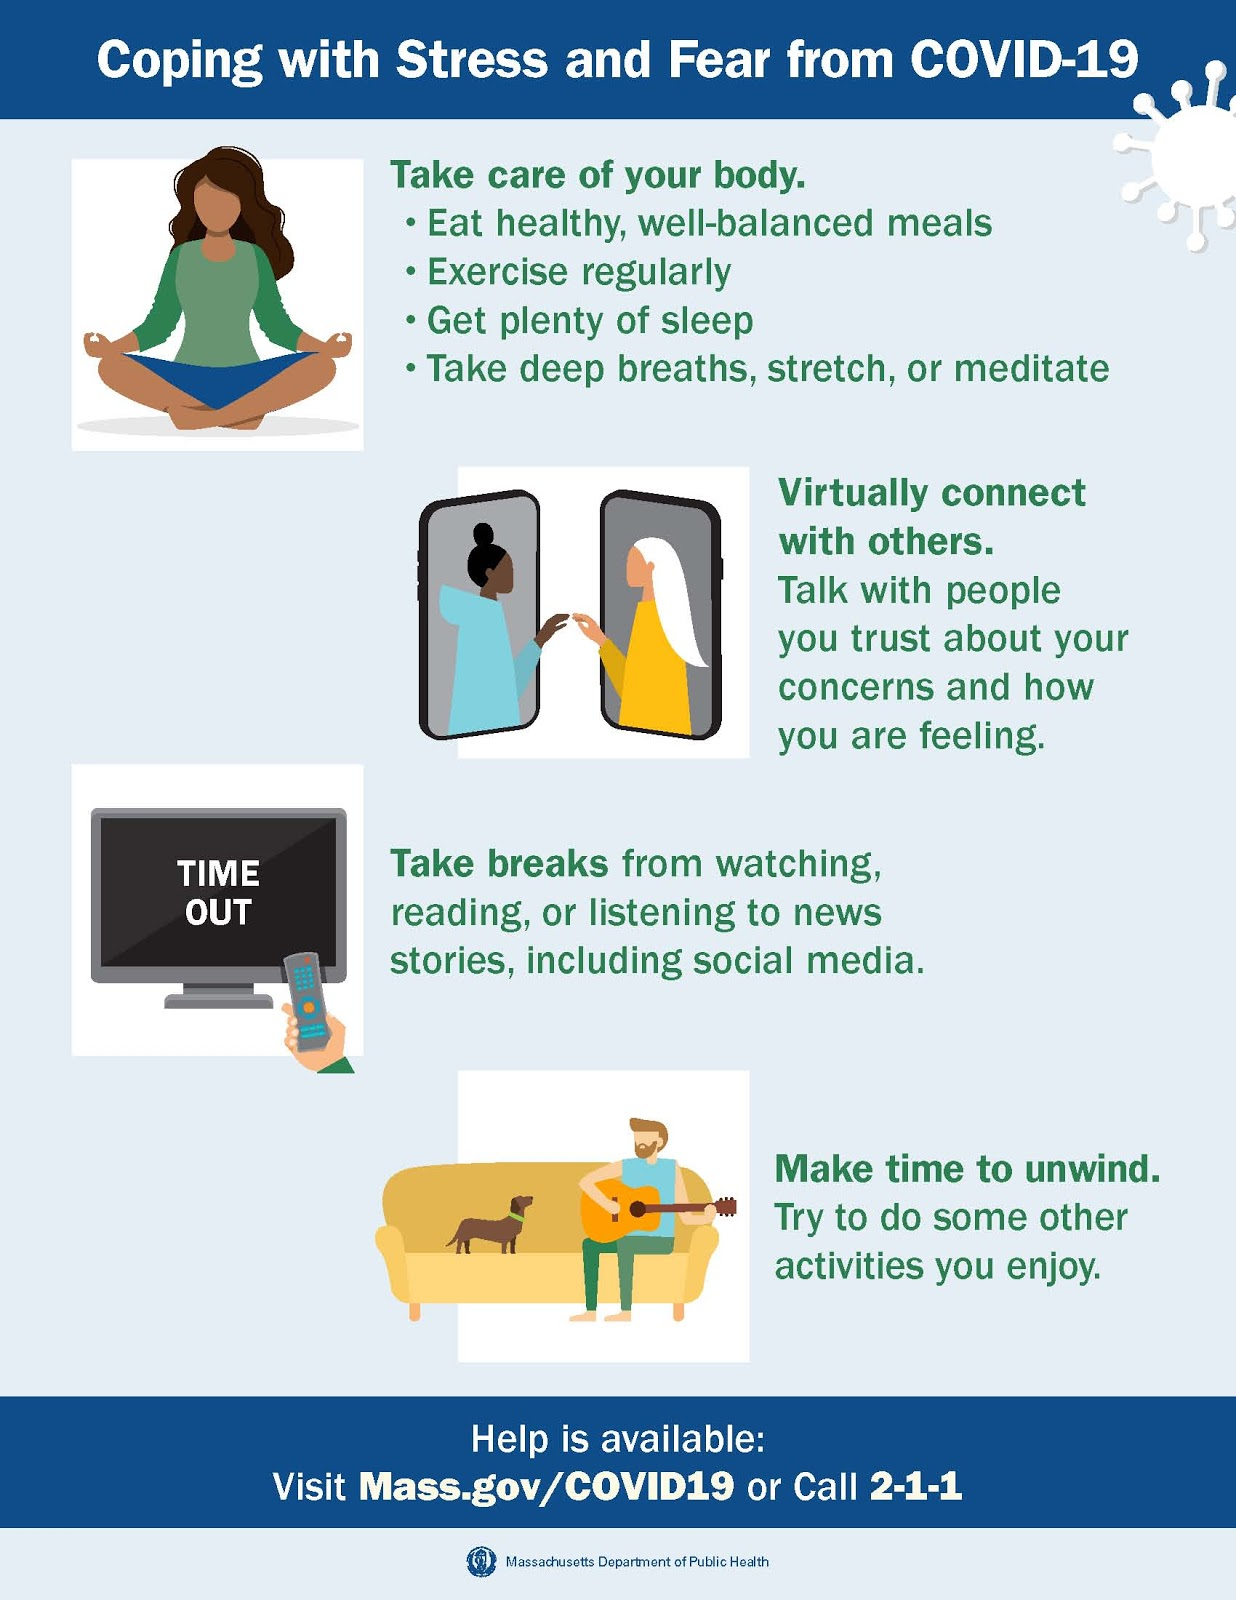 Take care of your body. Virtually connect with others. Take breaks from the news. Make time for fun activities.